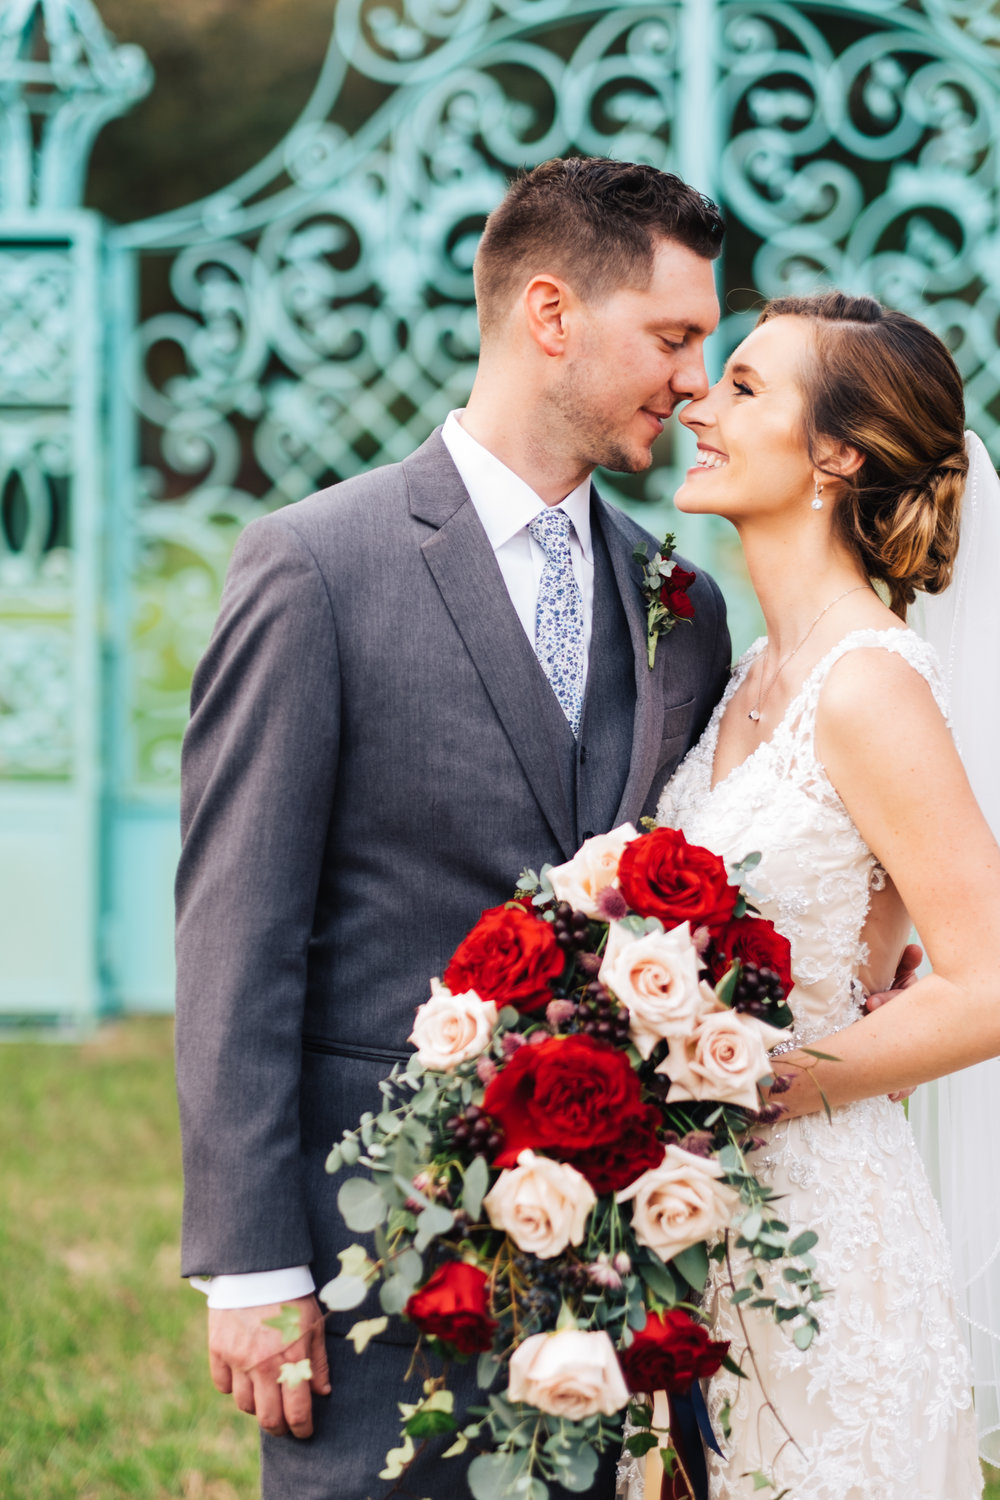 Bluegrass Chic - bride and groom